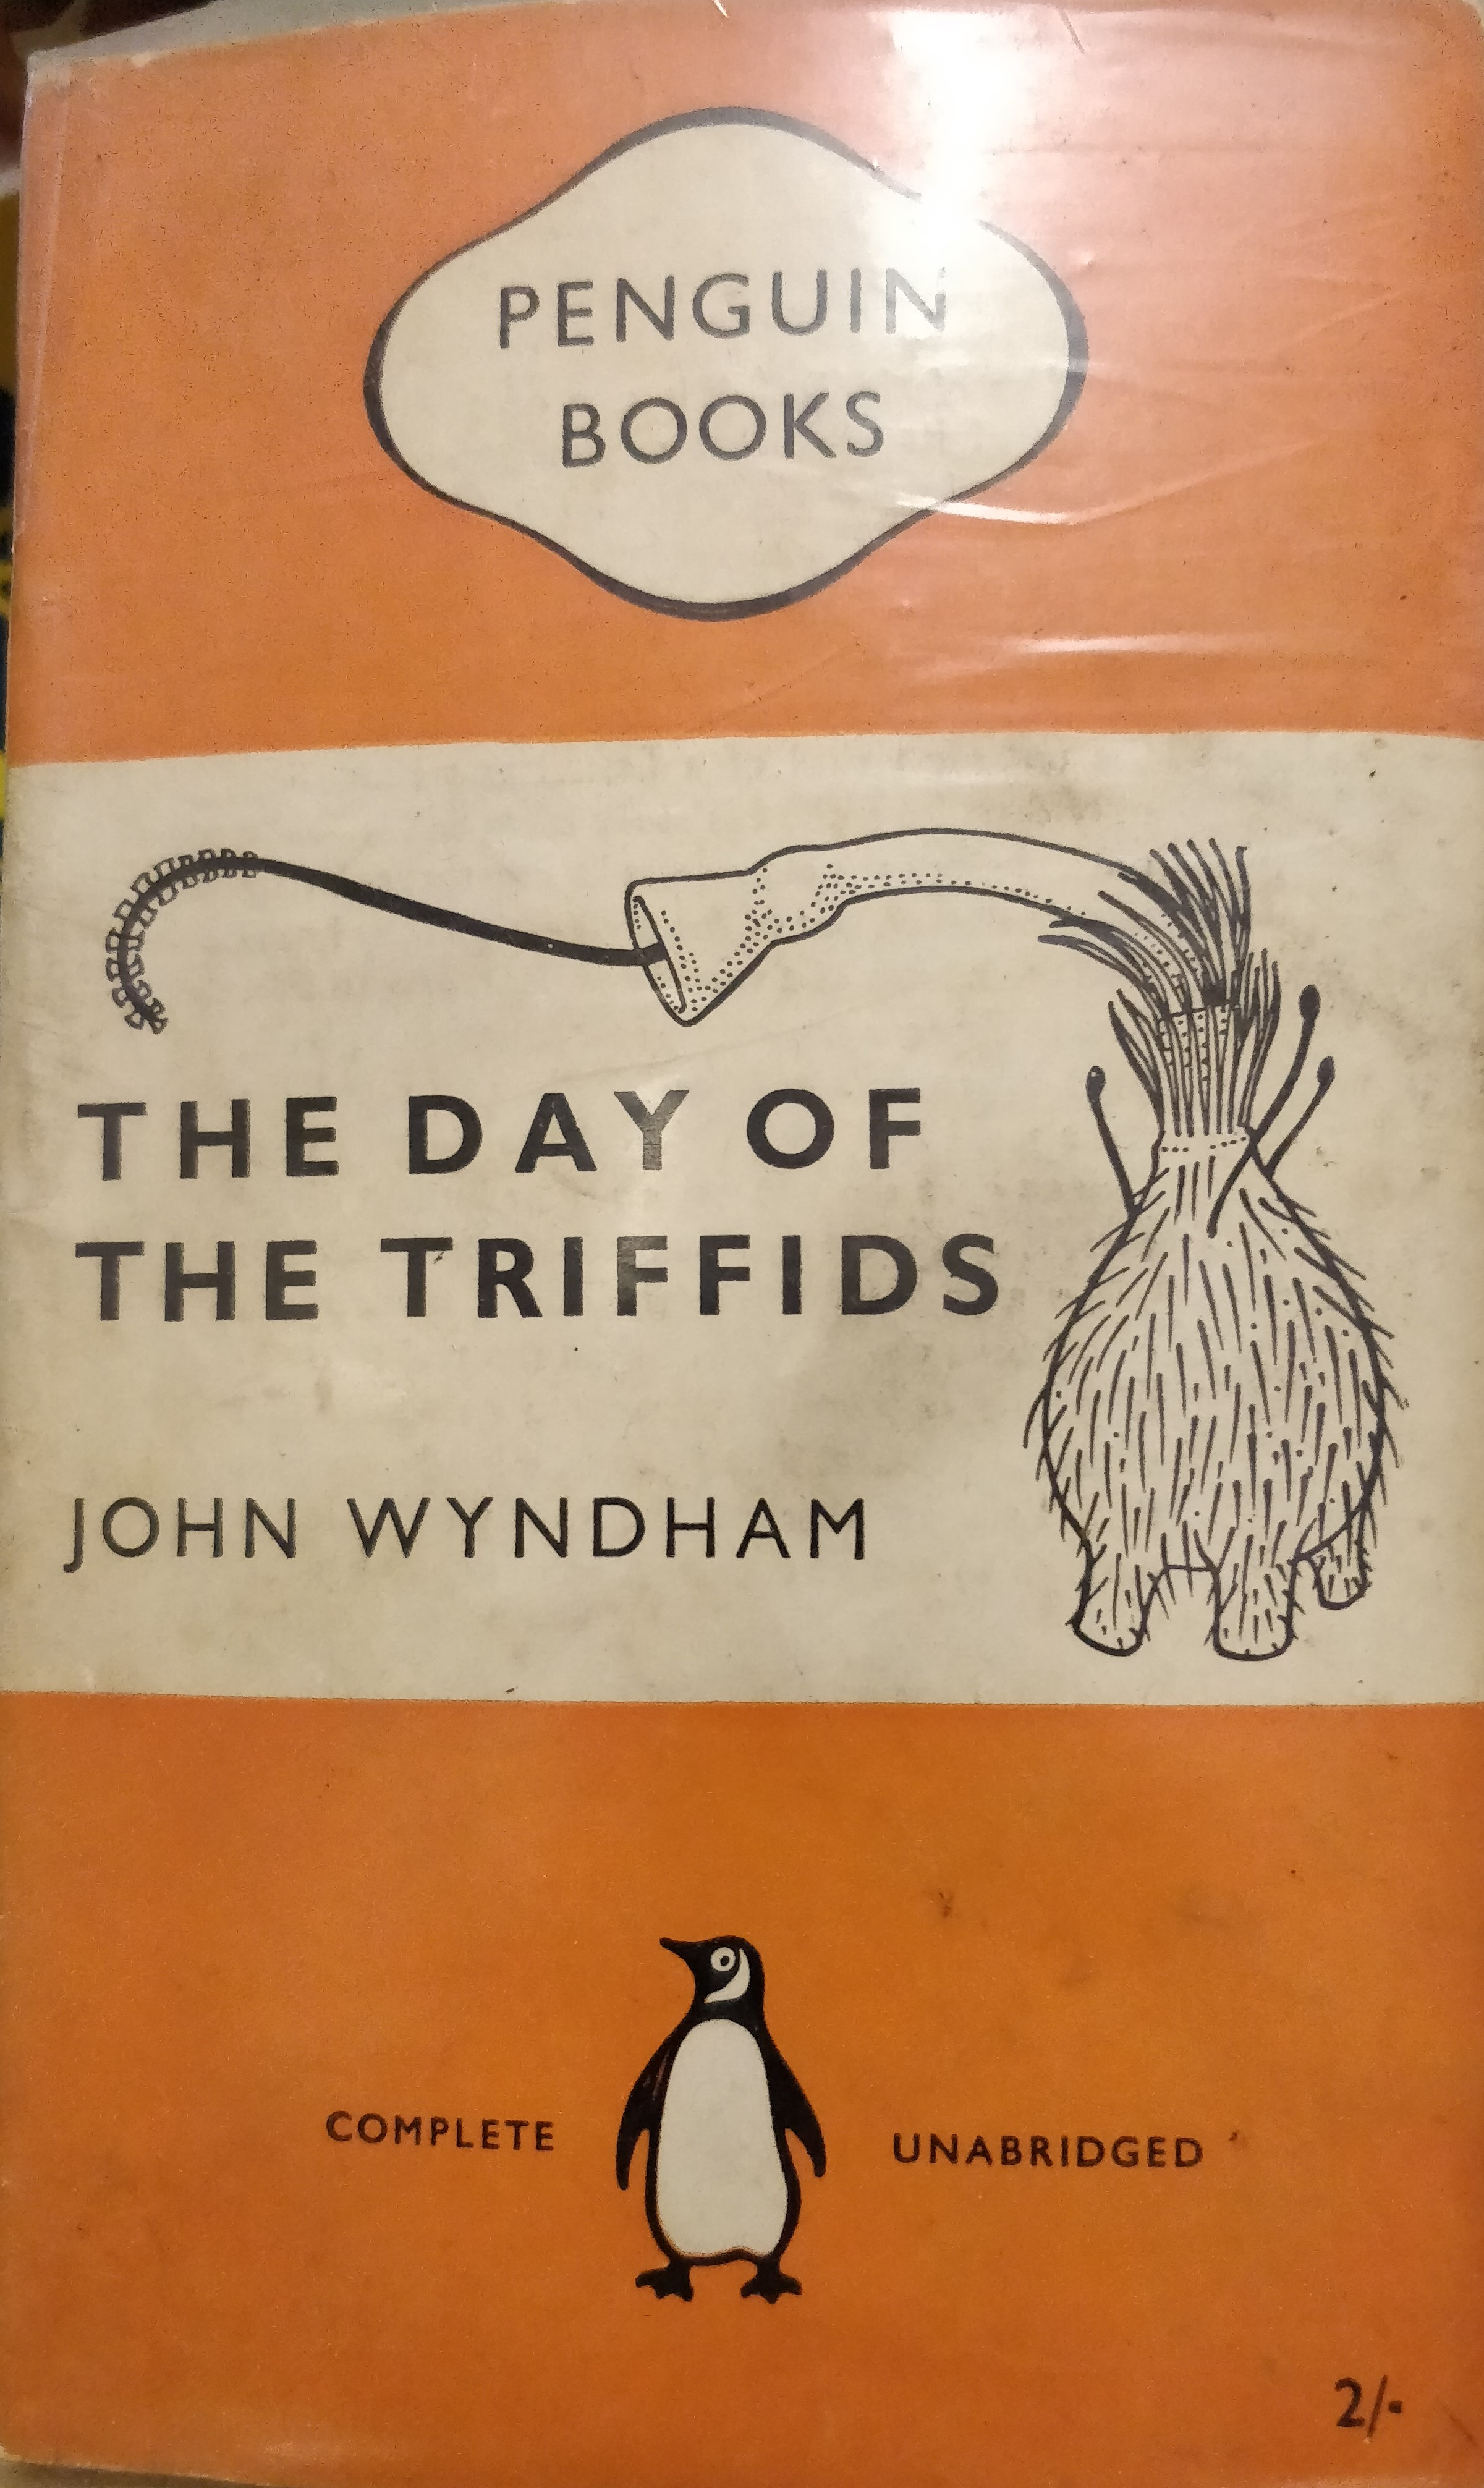 wyndham-john-the-day-of-the-triffids-penguin